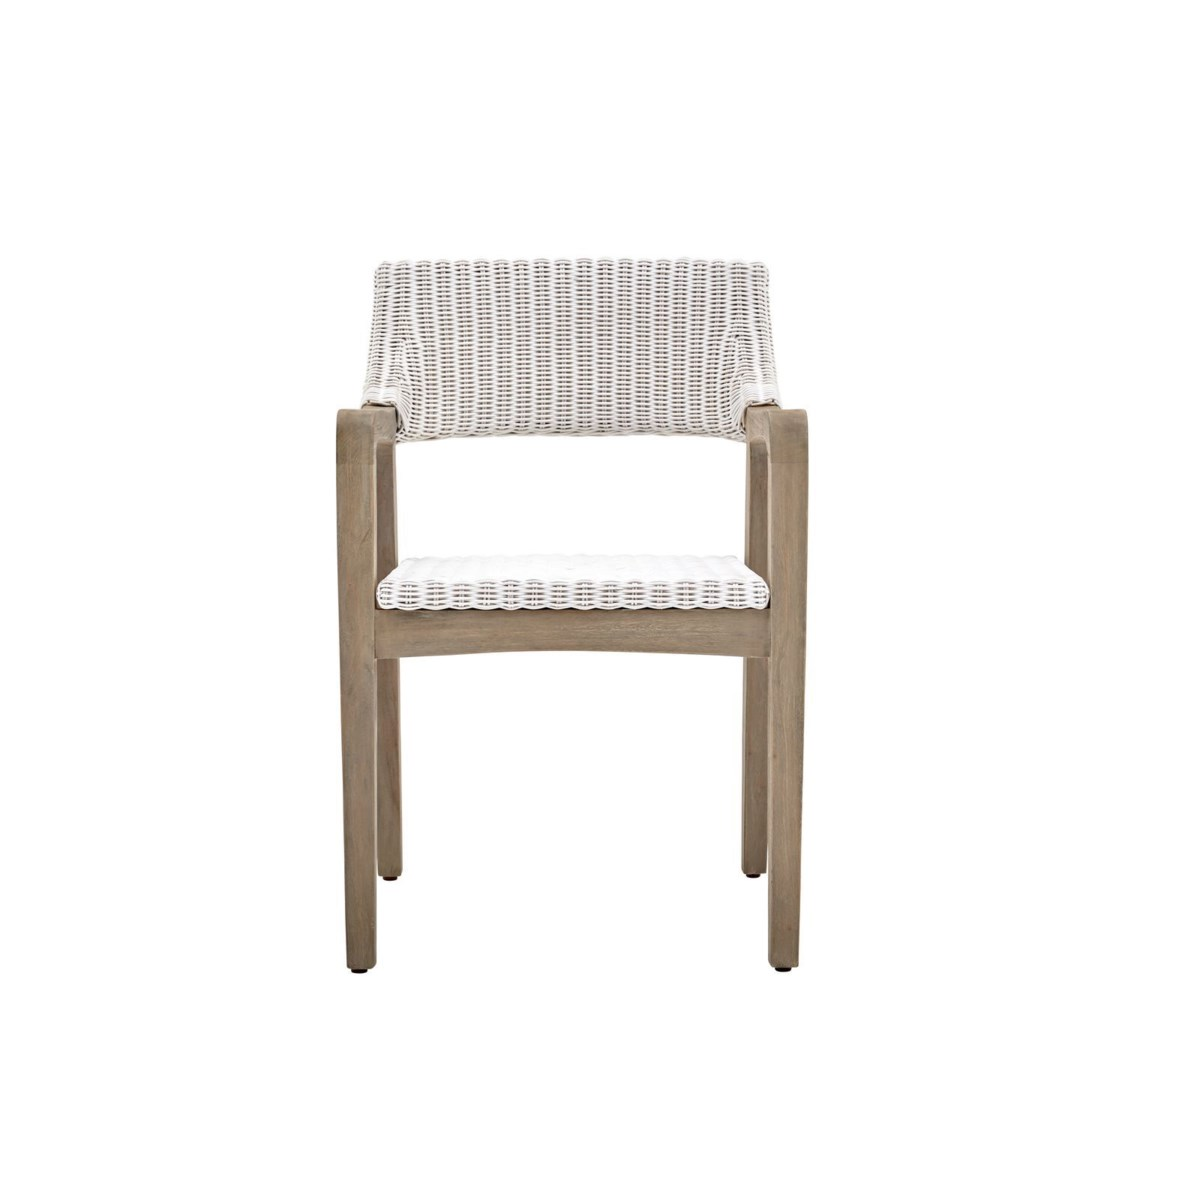 Urbane Arm Chair Frame Color - Old Gray Woven Seat & Back Color - White